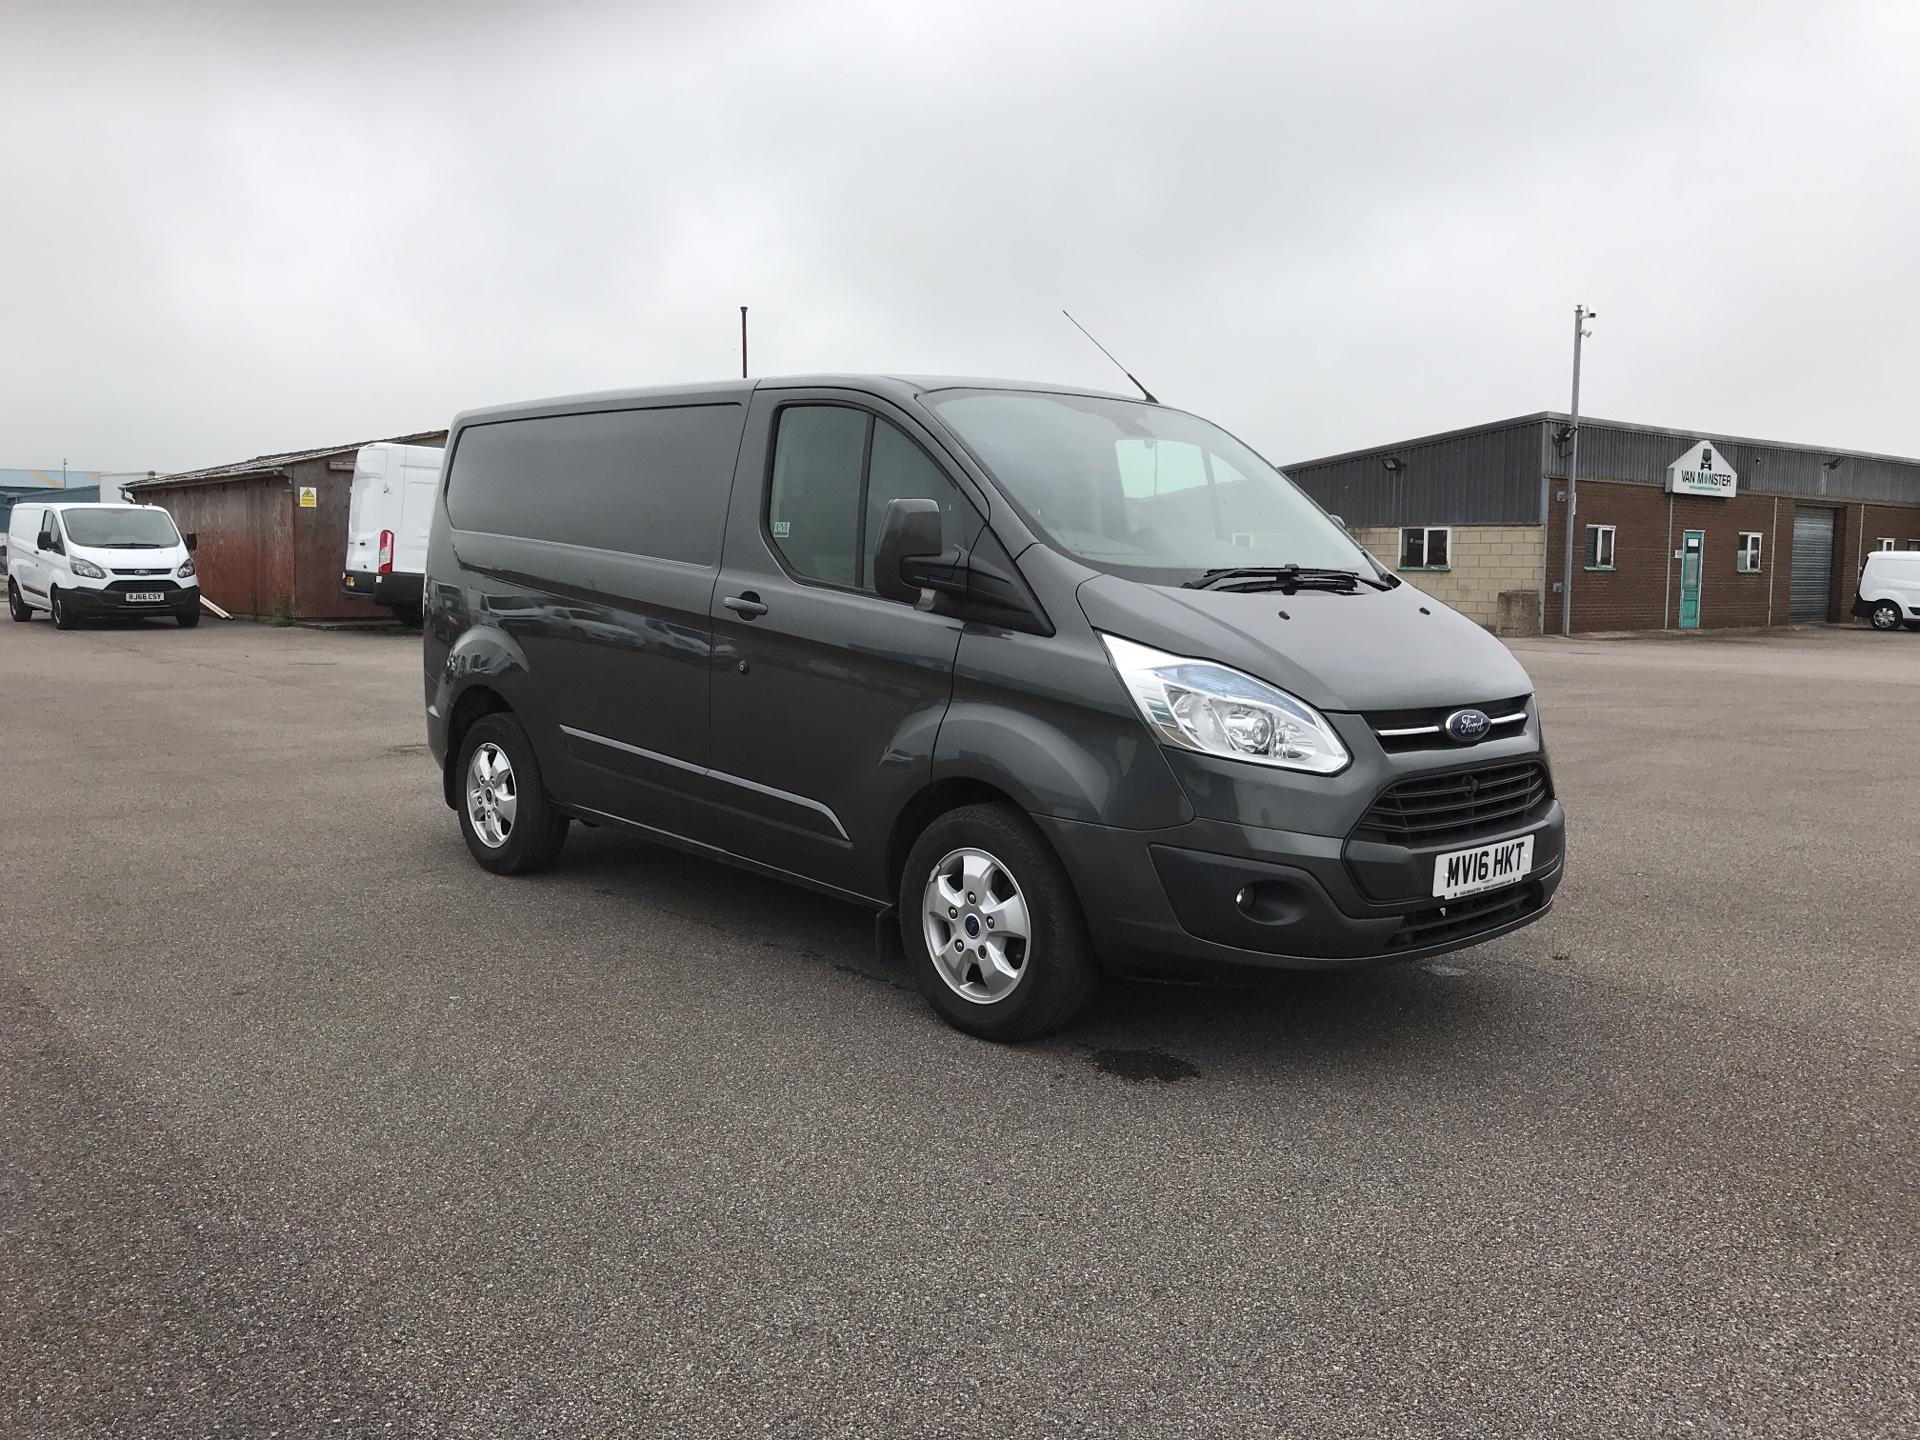 2016 Ford Transit Custom 270 L1 DIESEL FWD 2.2 TDCI 125PS LOW ROOF LIMITED VAN EURO 5  (MV16HKT)